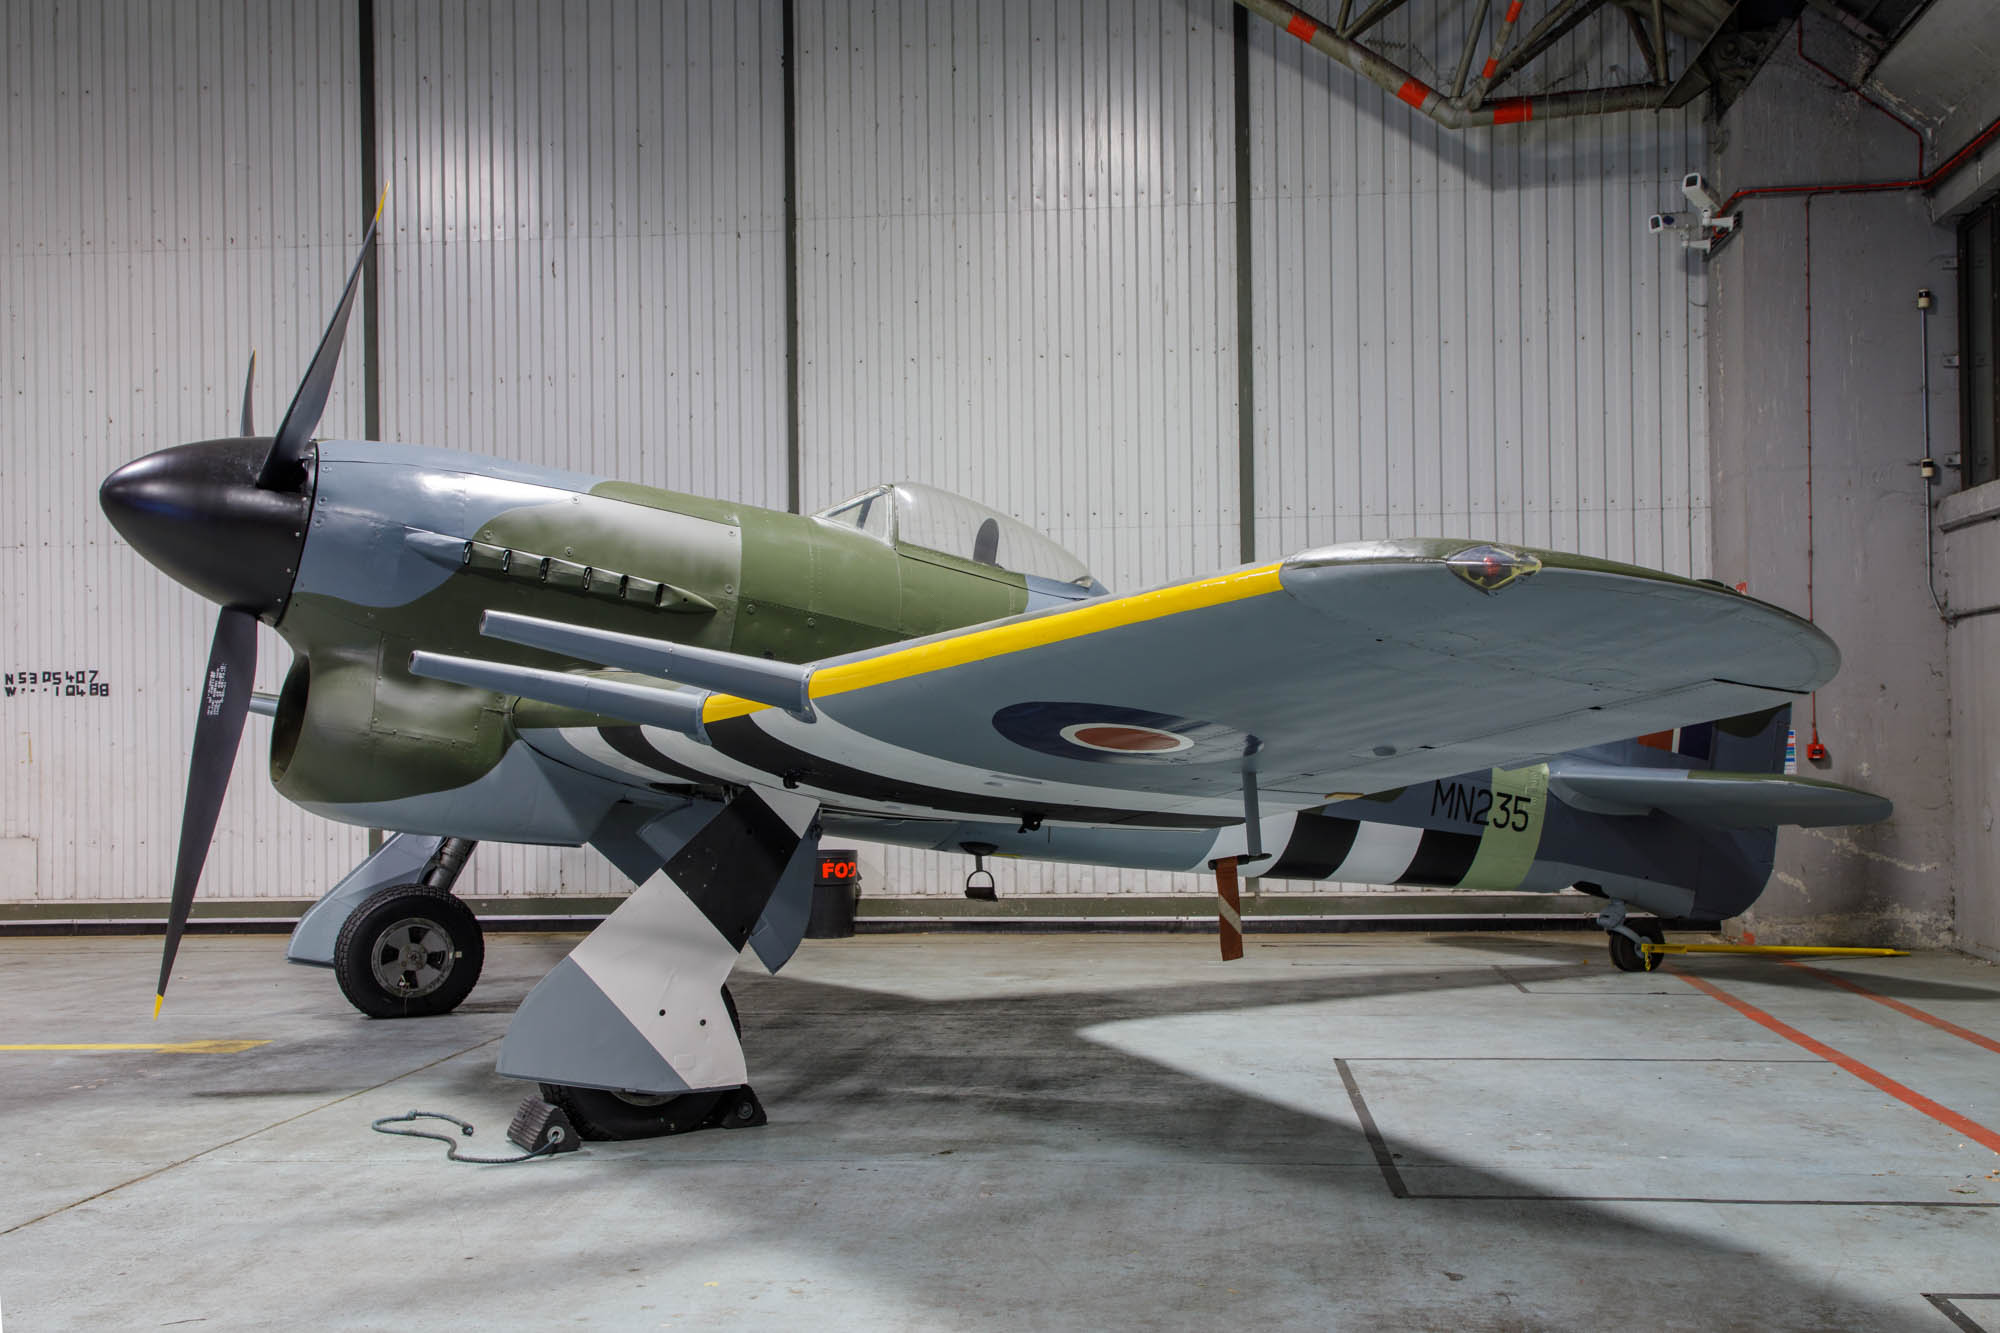 Hawker Typhoon 1B (MN235) on display at RAF Coningsby